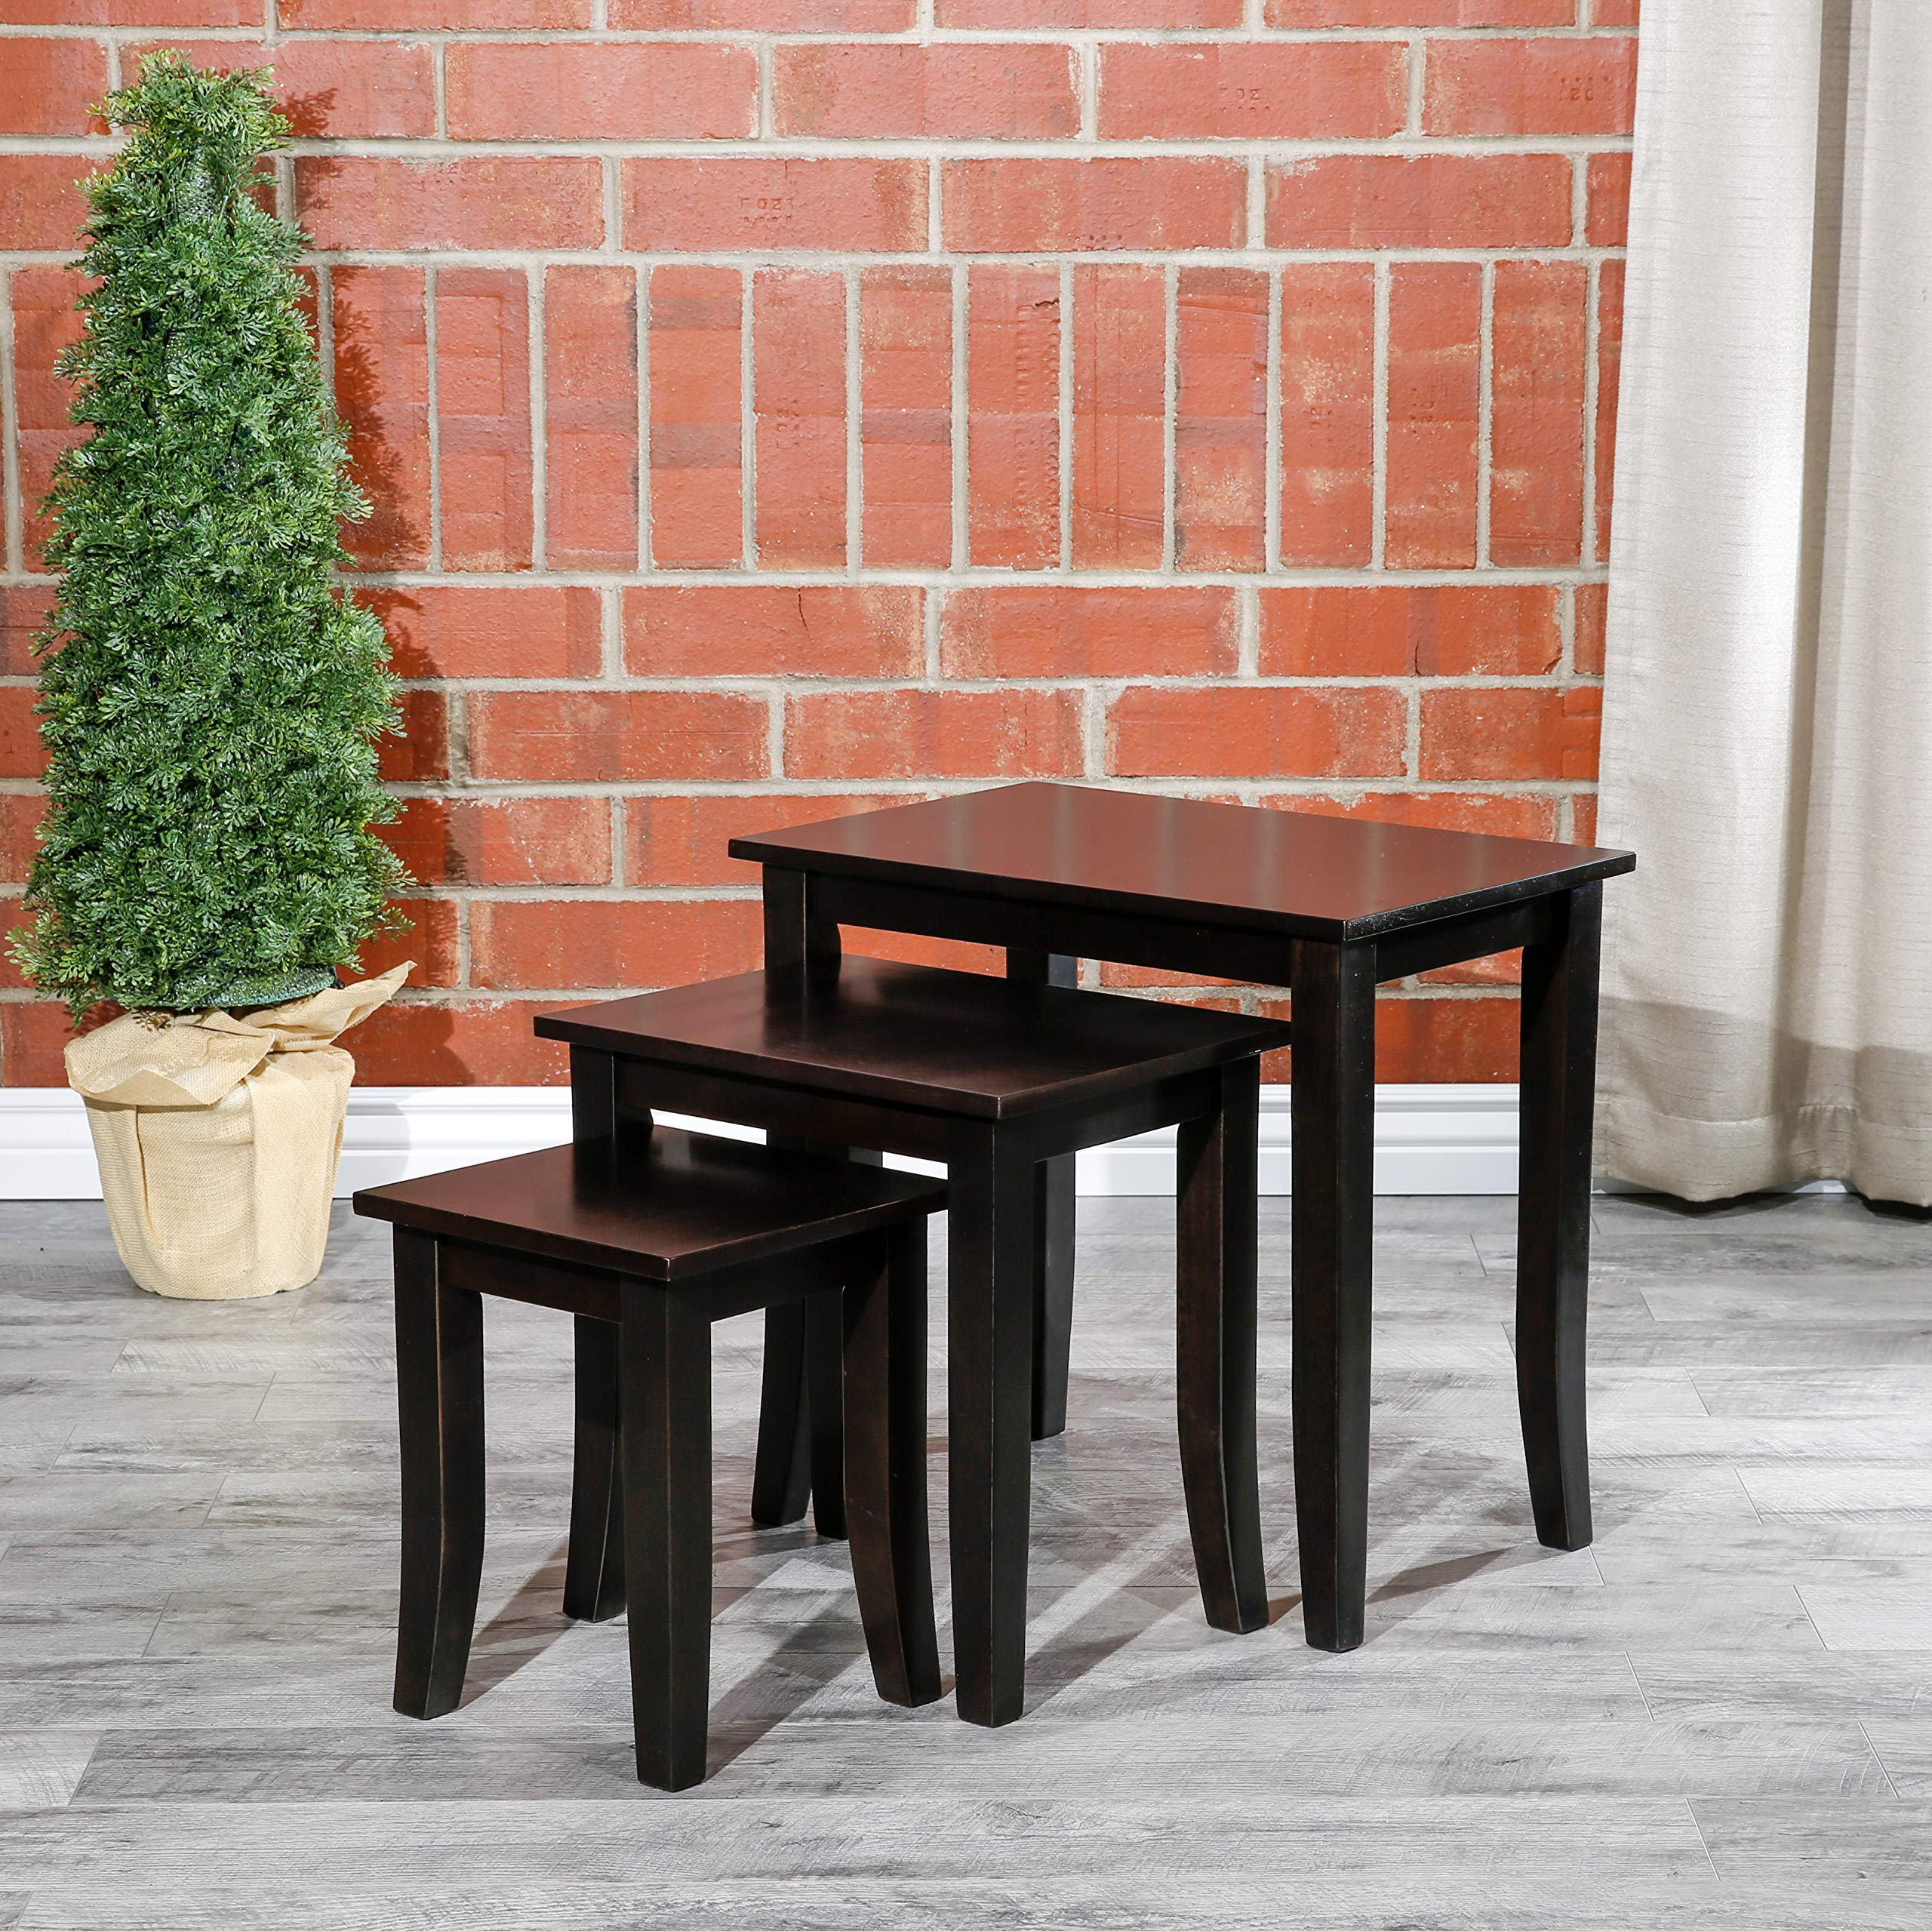 DTY Indoor Living Avon 3-Piece Nesting Table Collection - Espresso by DTY